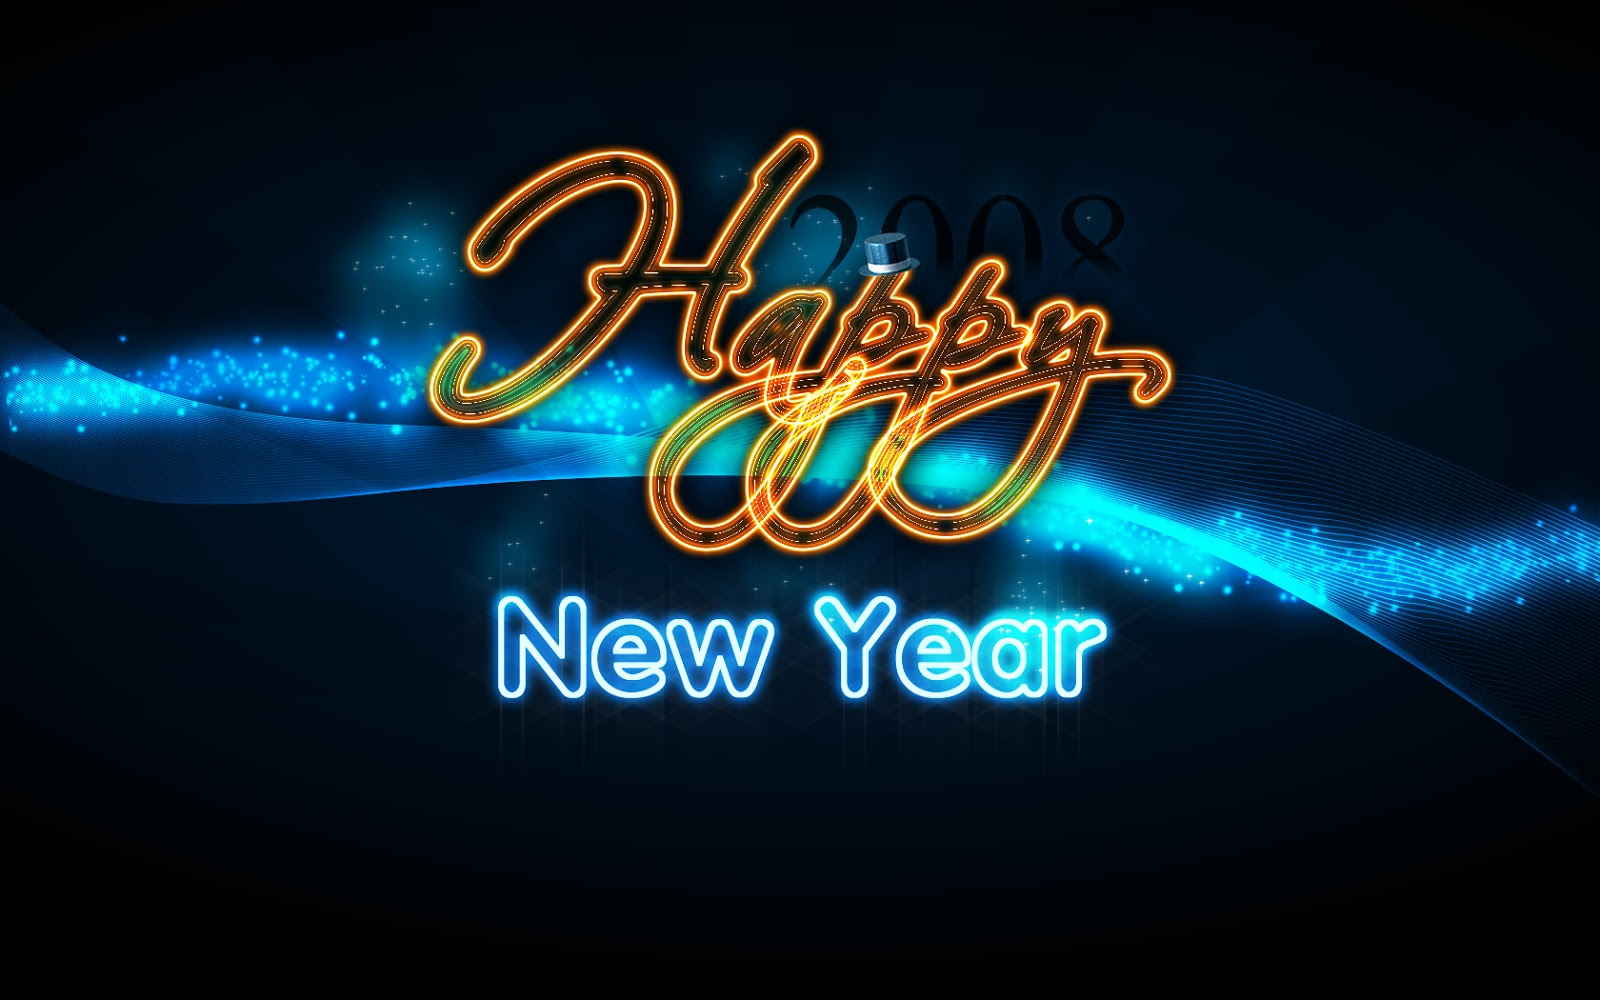 New Year 2016 Wallpapers New Year 2016 Pctures HD Happy New Year 2016 1600x1000